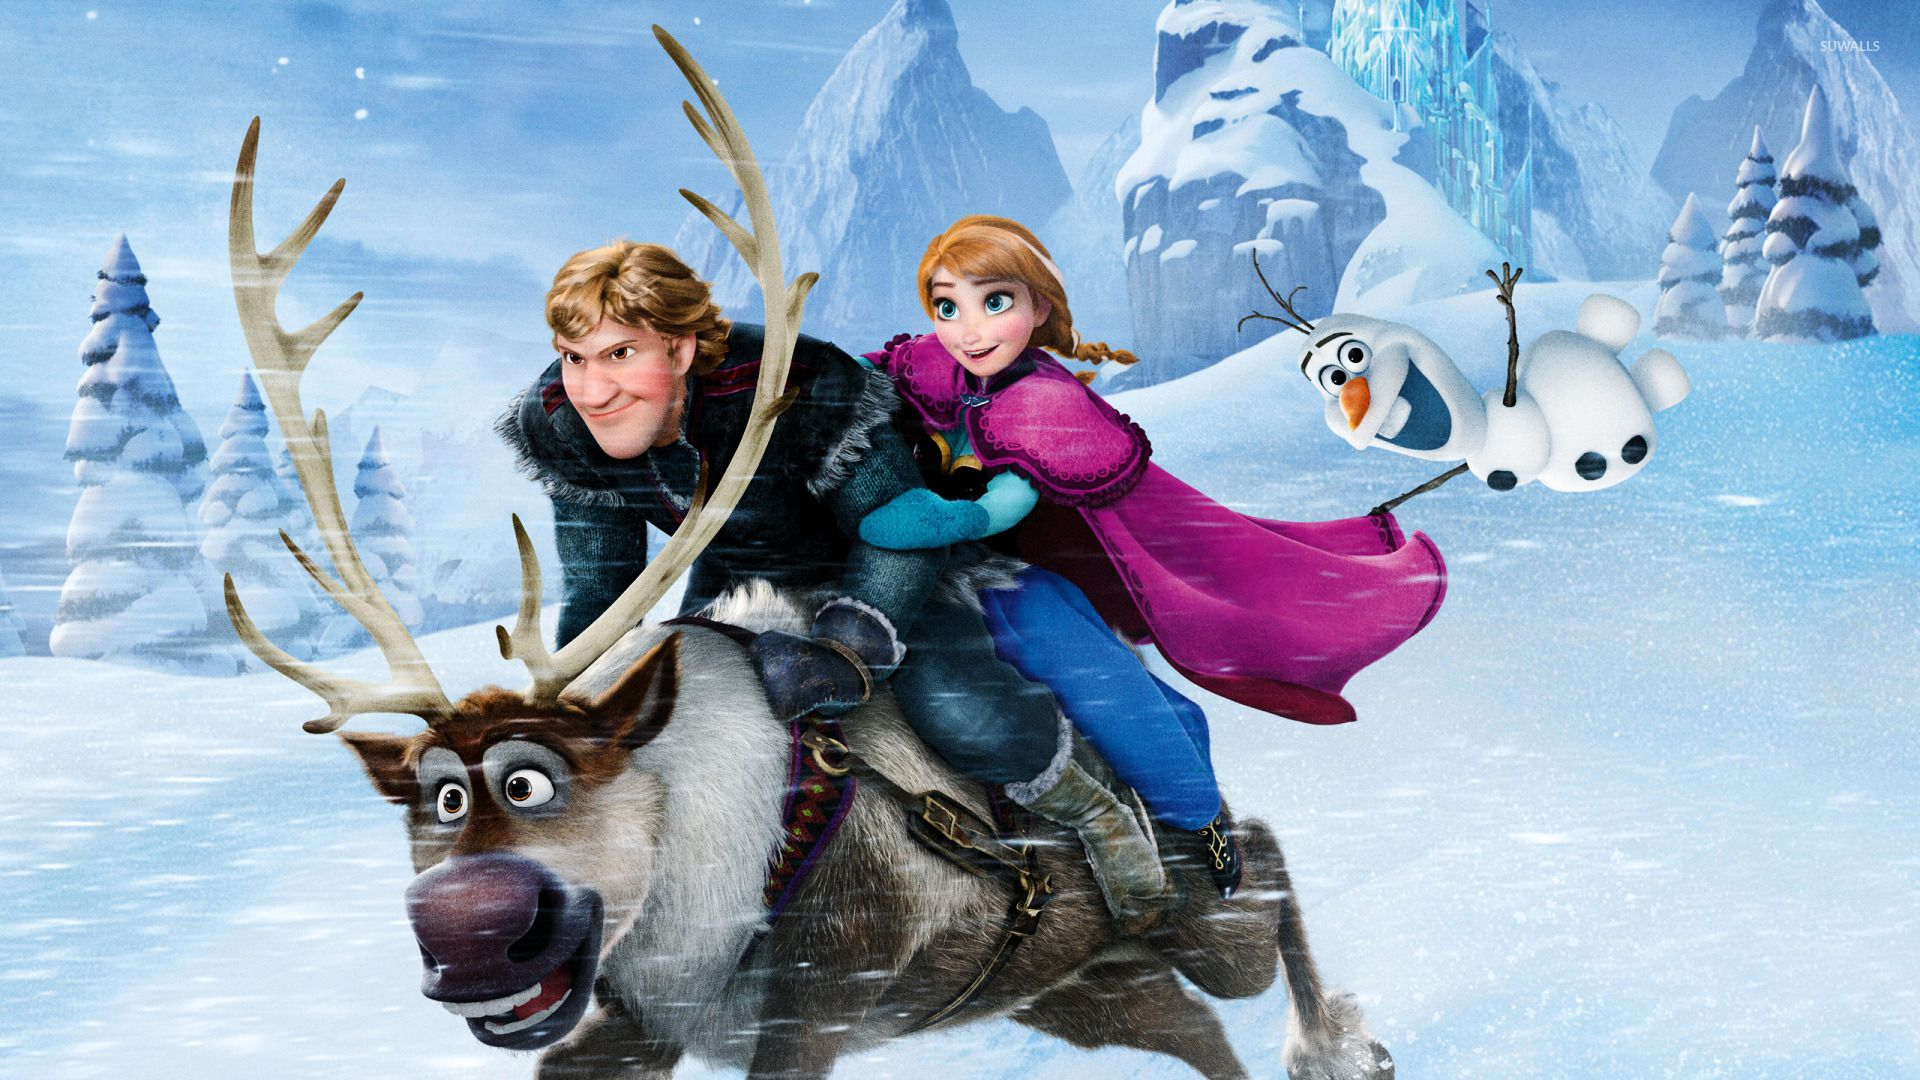 Frozen cartoon pictures images wallpapers cartoon - Frozen cartoon wallpaper ...